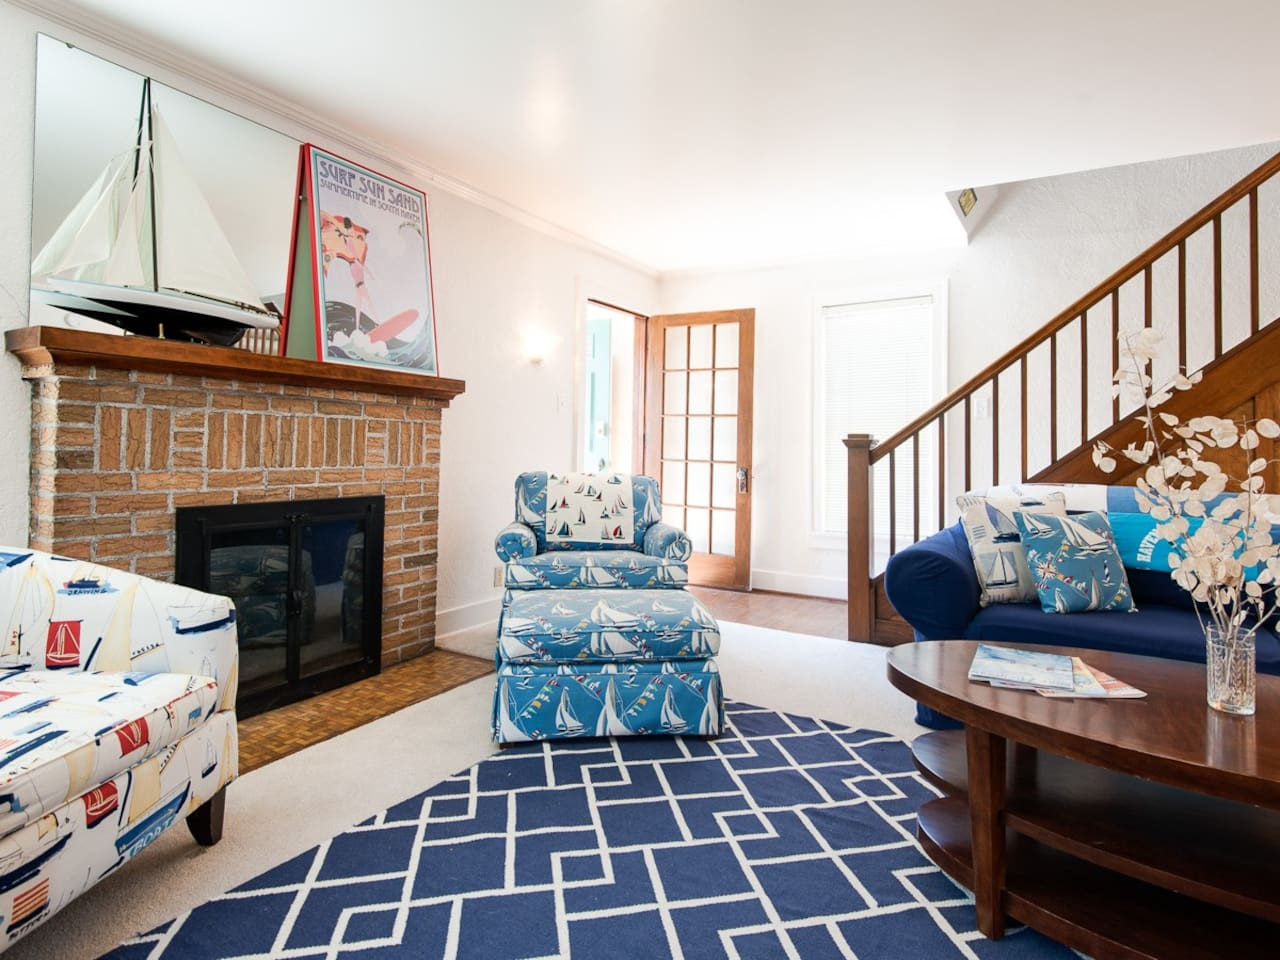 Living Room - fireplace is only decorative